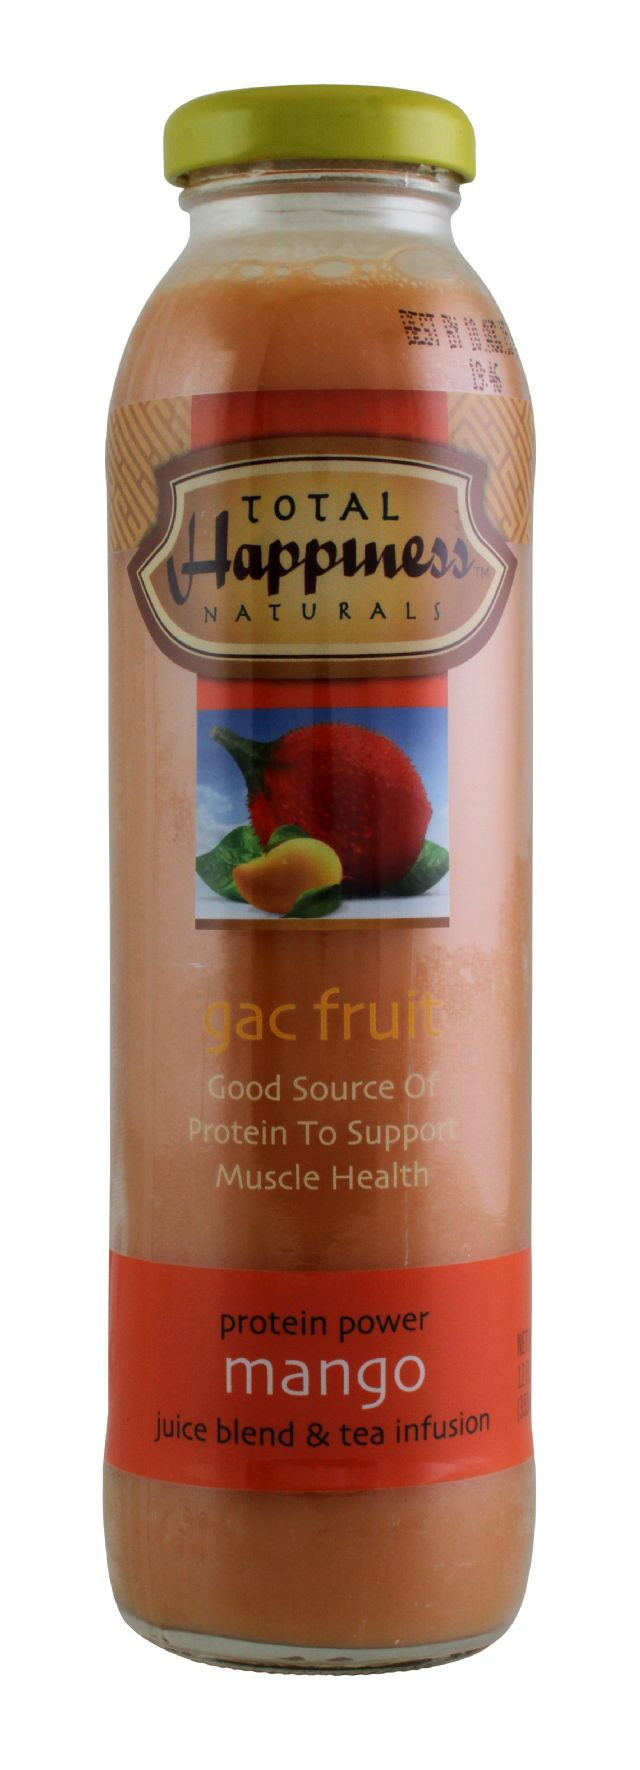 Total Happiness Naturals: TotalHappiness Mango Front